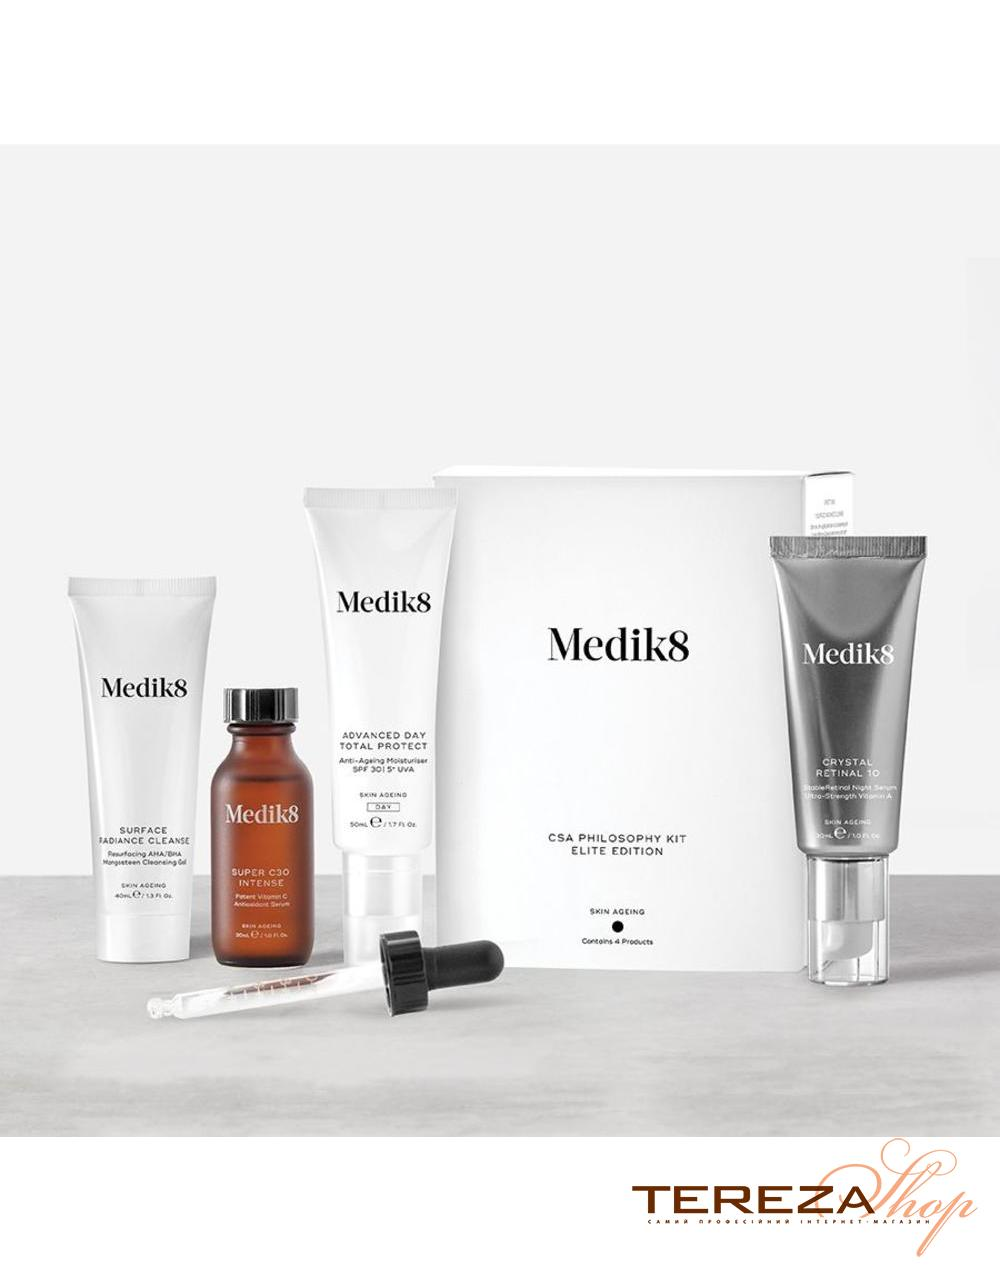 CSA PHILOSOPHY KIT ELITE EDITION MEDIK8 | Tereza Shop